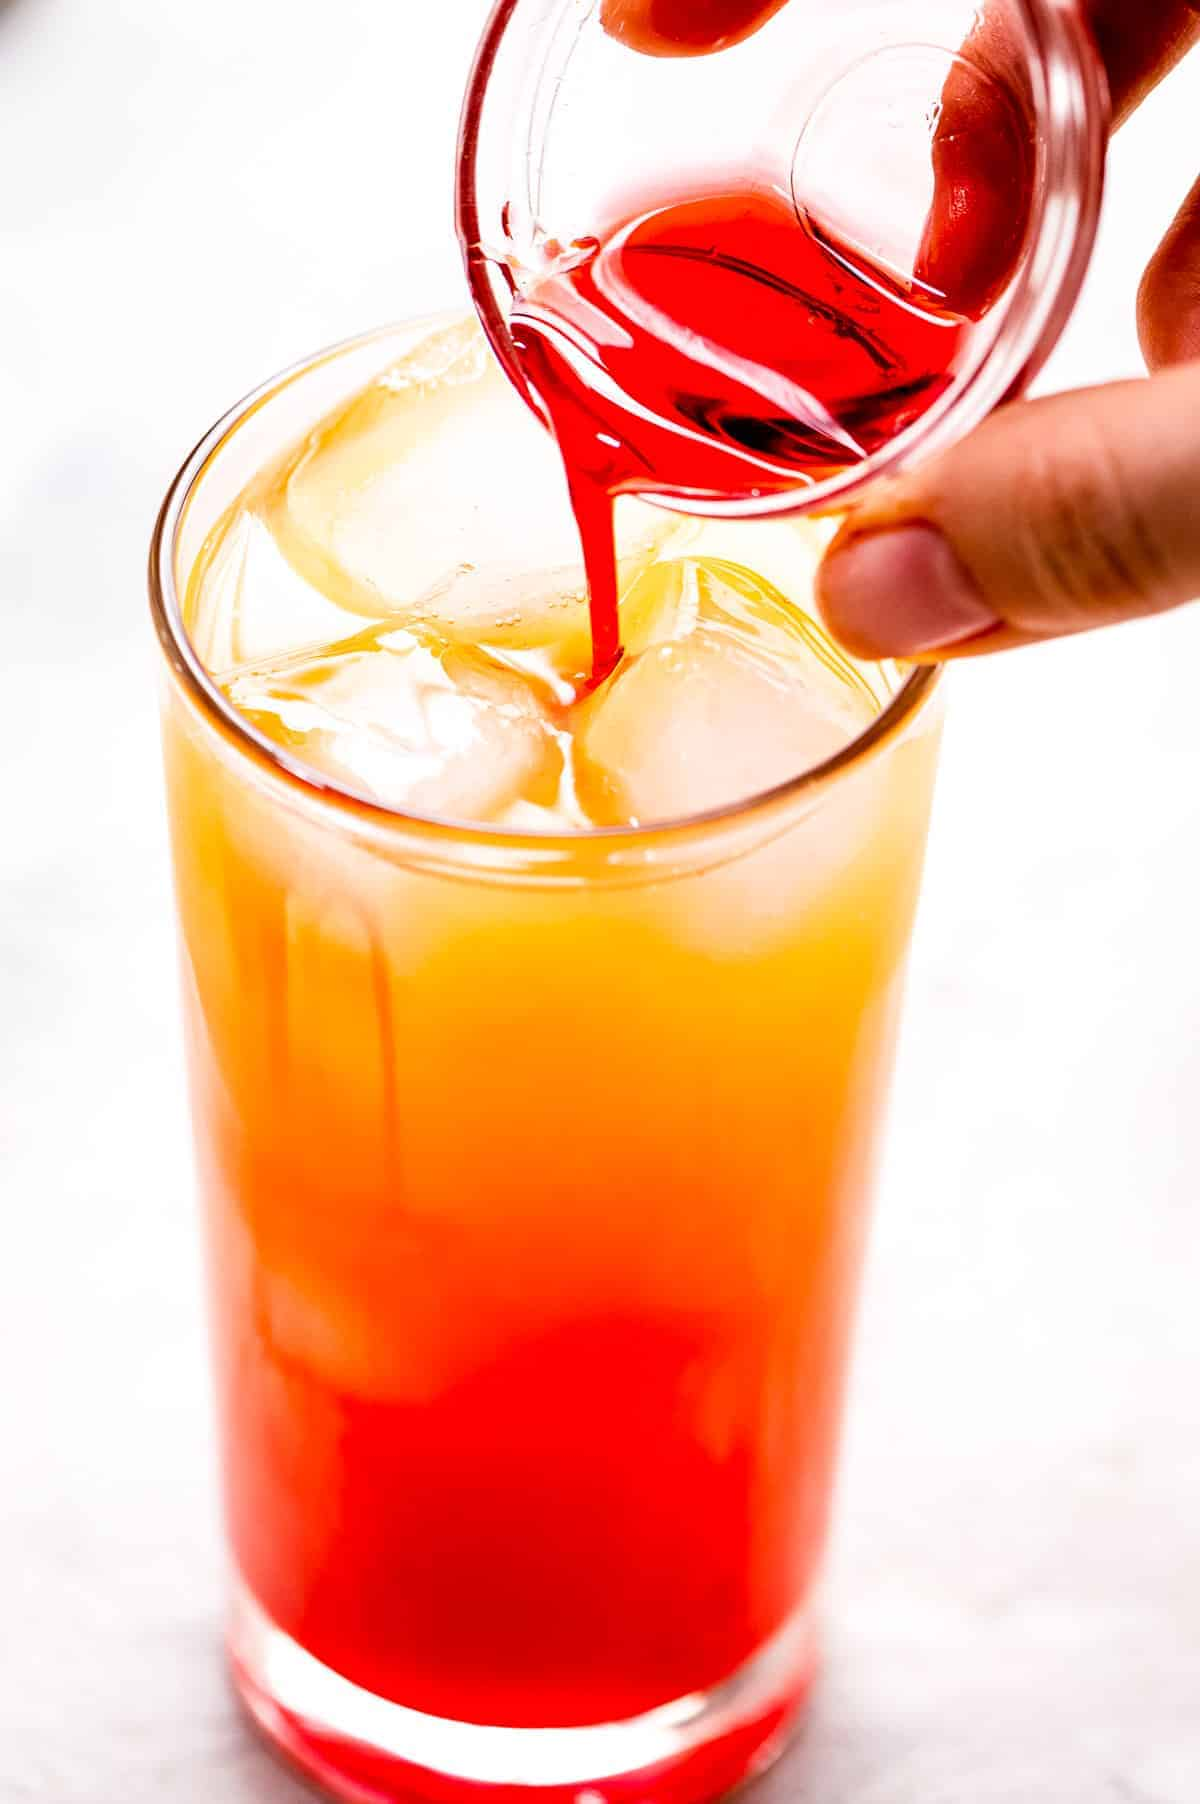 Hand pouring maraschino cherry juice into a high ball glass with orange juice